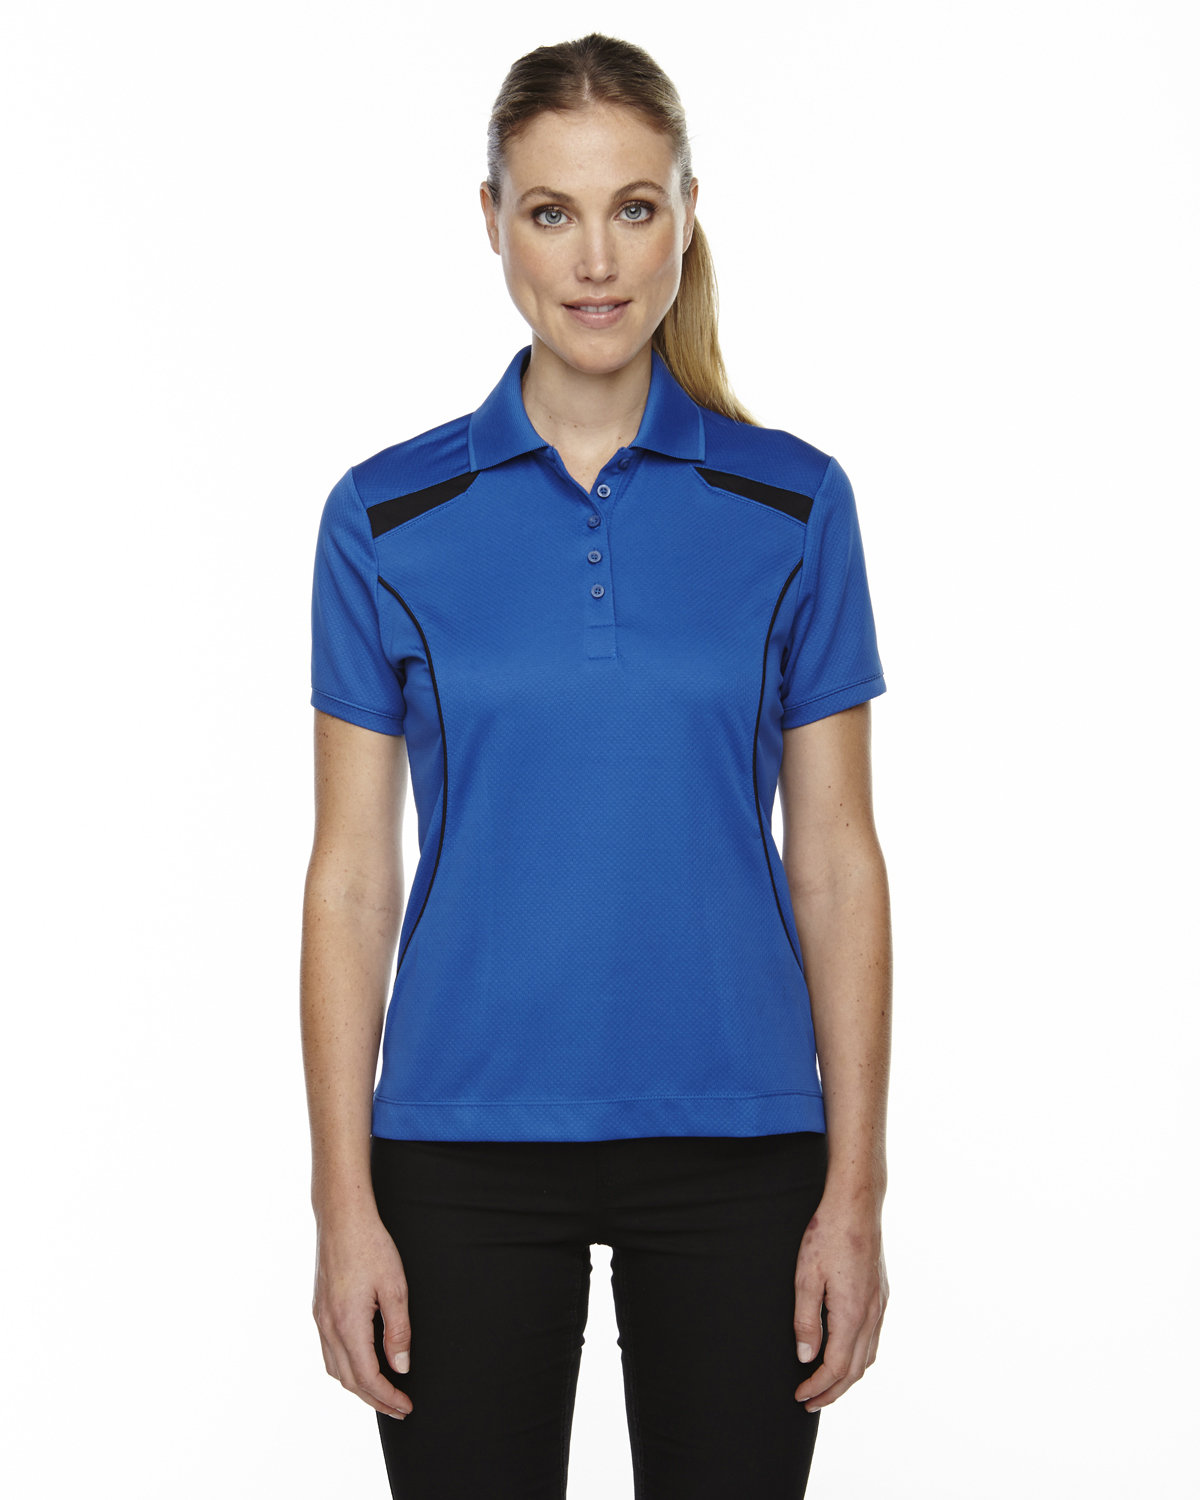 Extreme Ladies' Eperformance™' Tempo Recycled Polyester Performance Textured Polo NAUTICAL BLUE